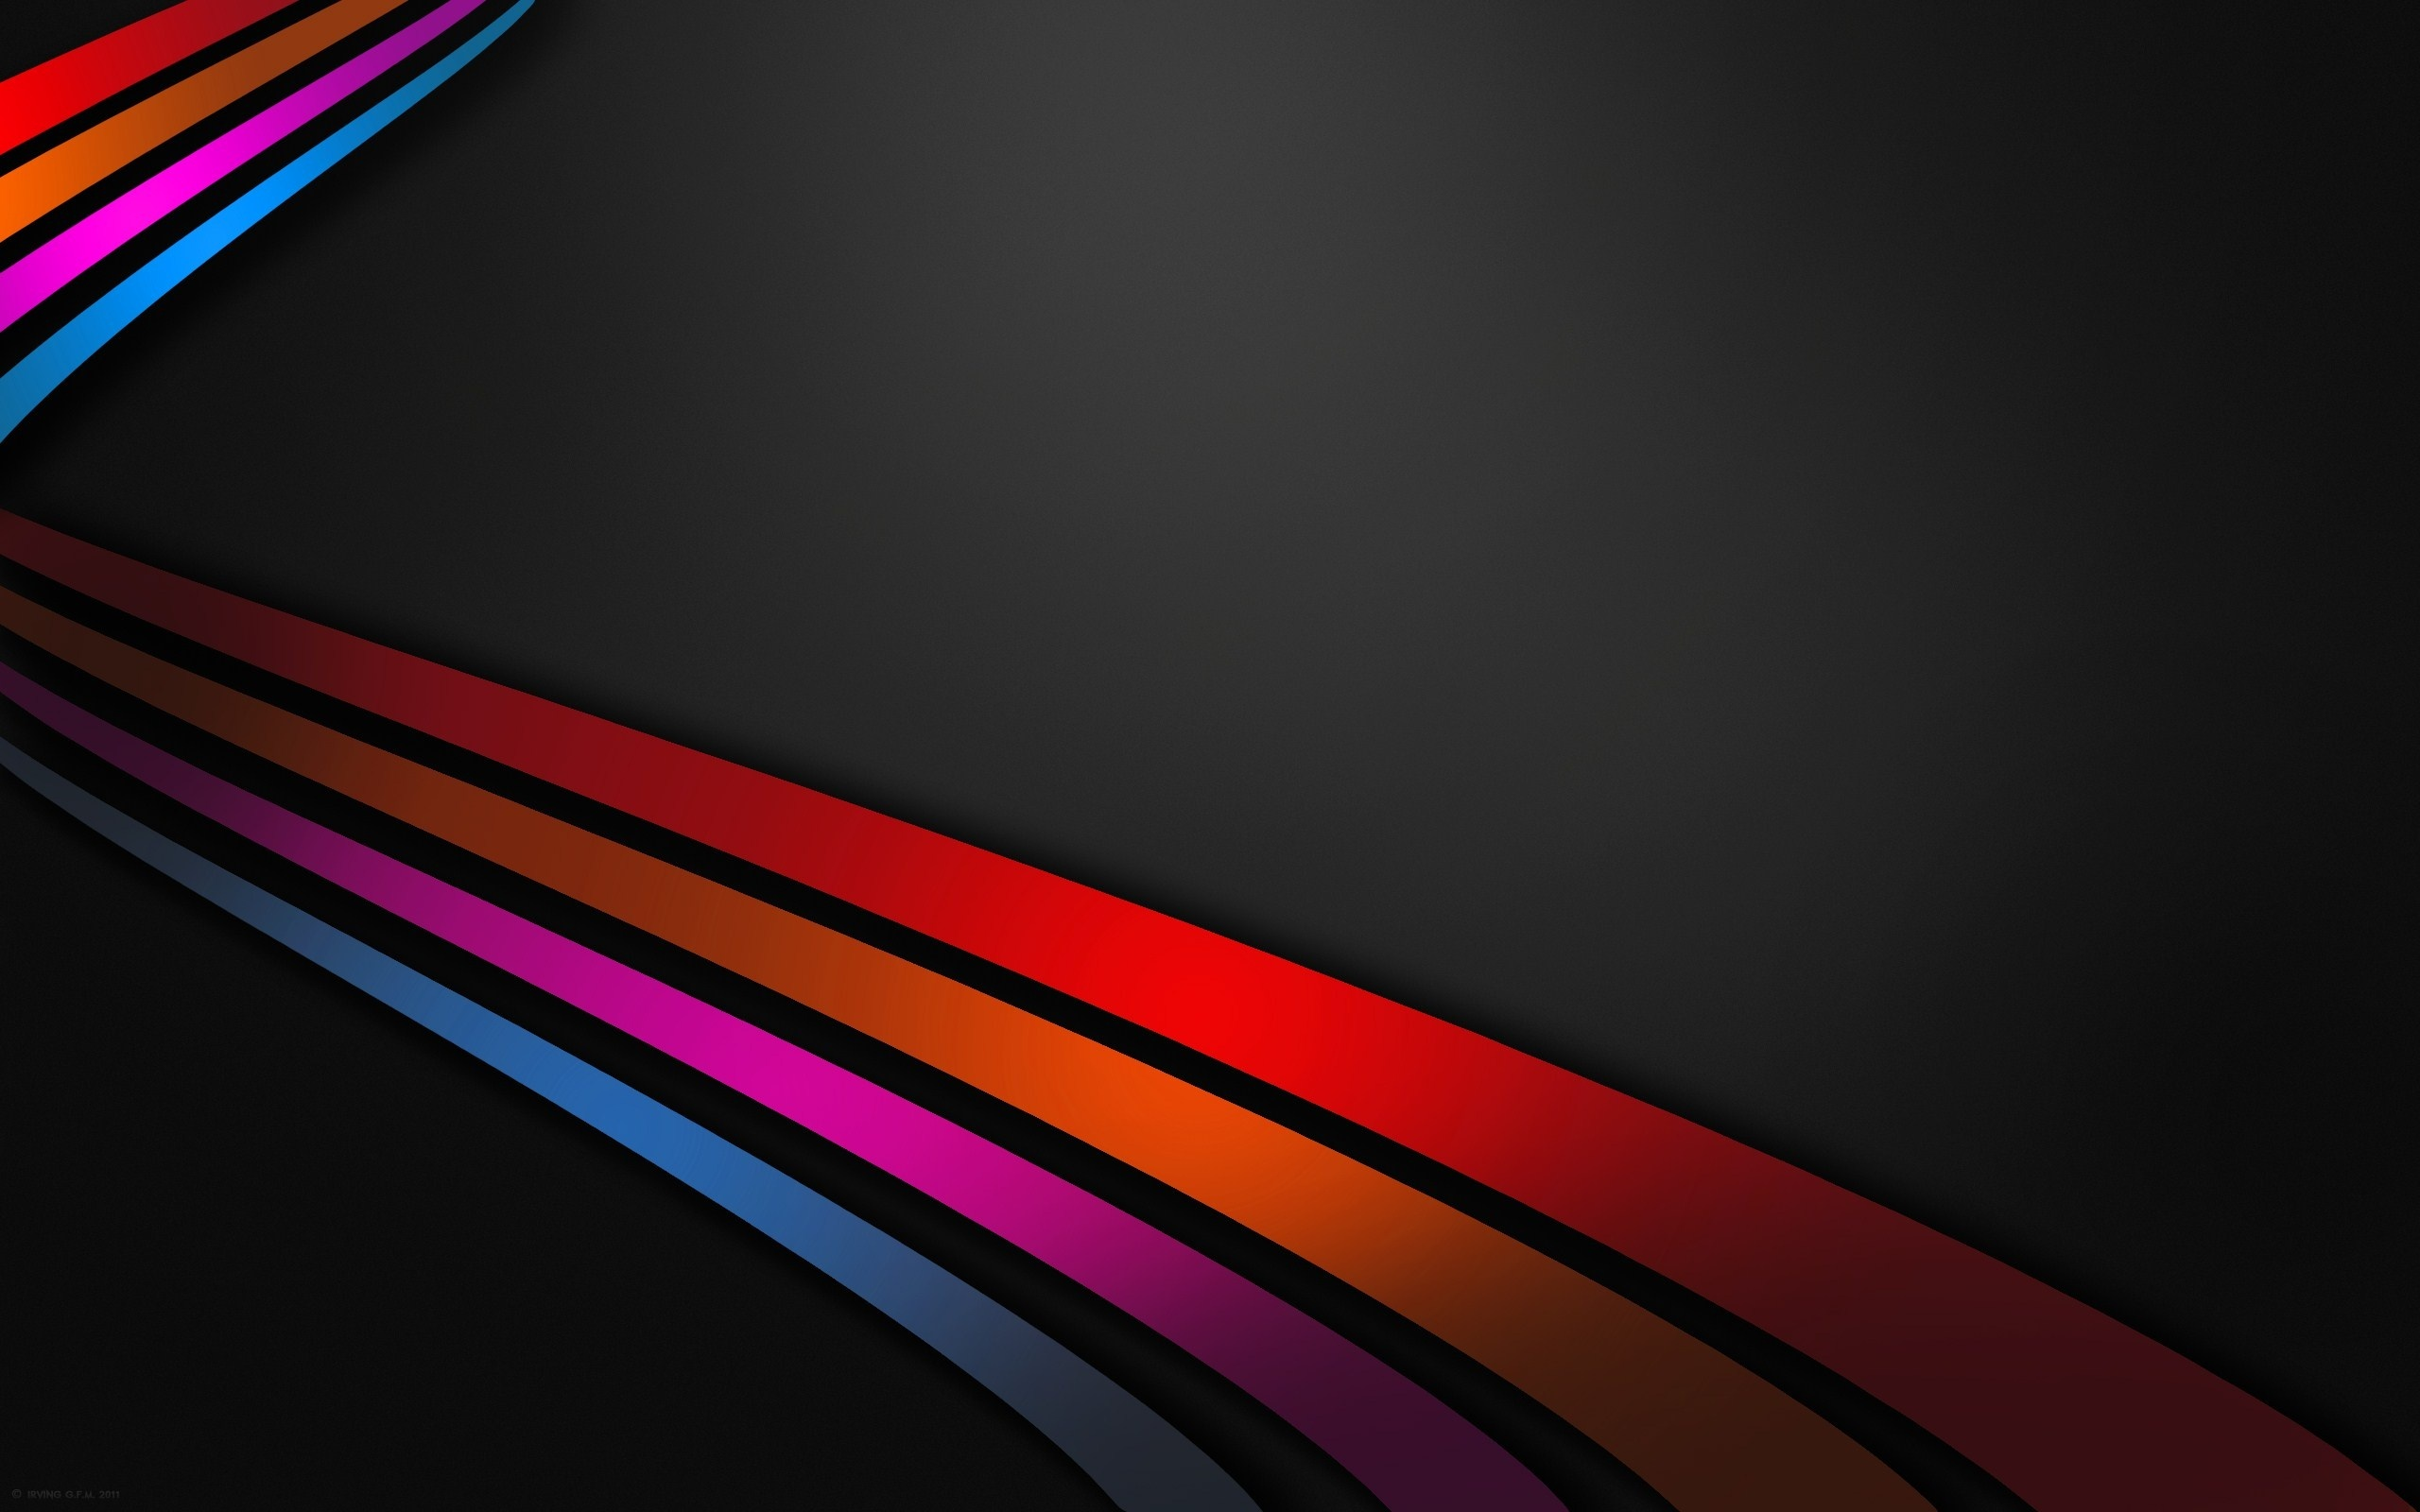 Lines Abstract Hd